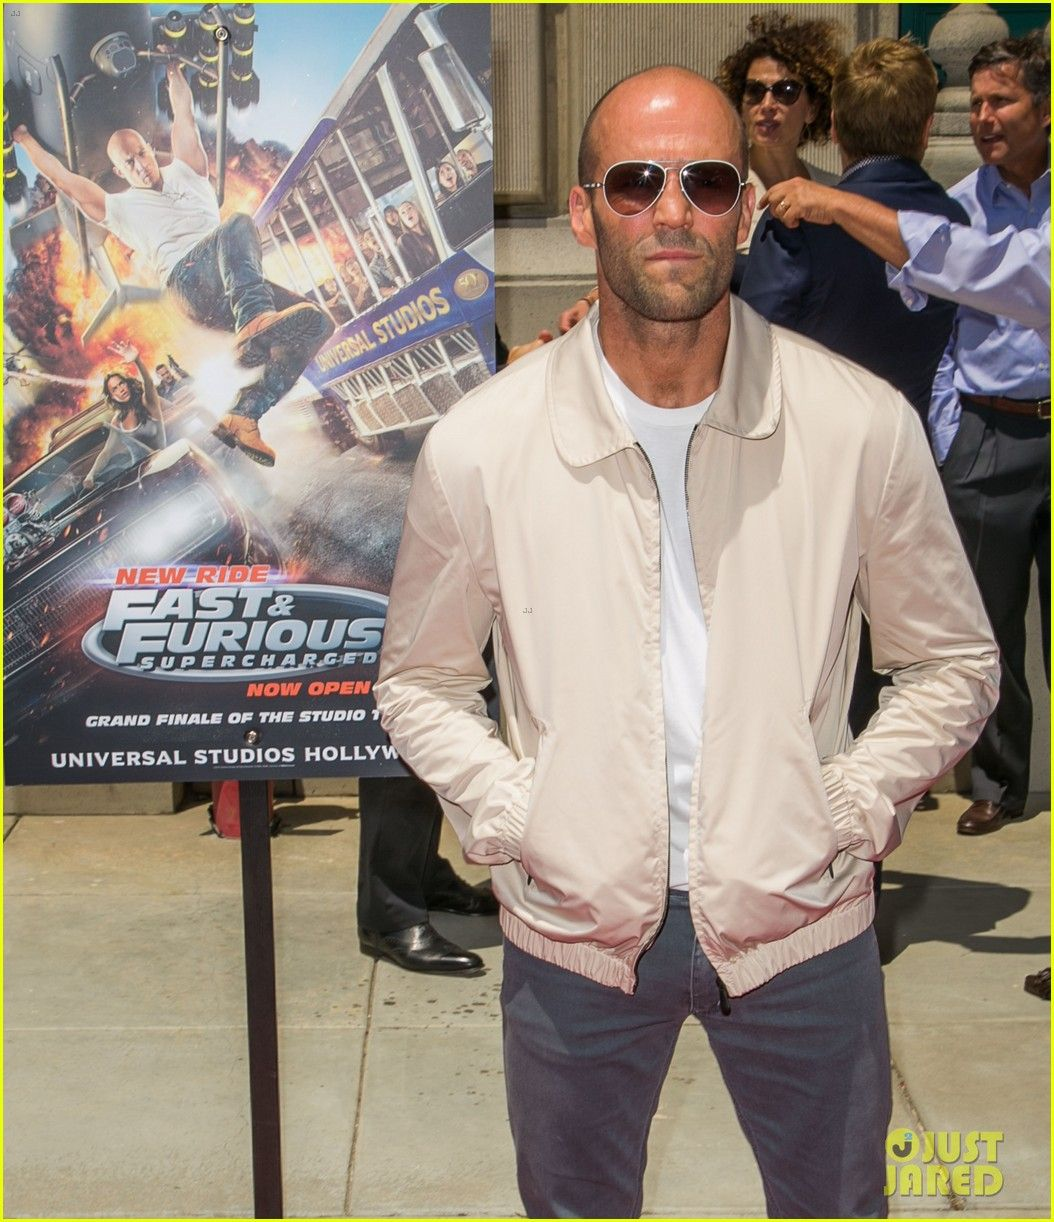 Jason Statham Announces He Is Returning For 'Furious 8'